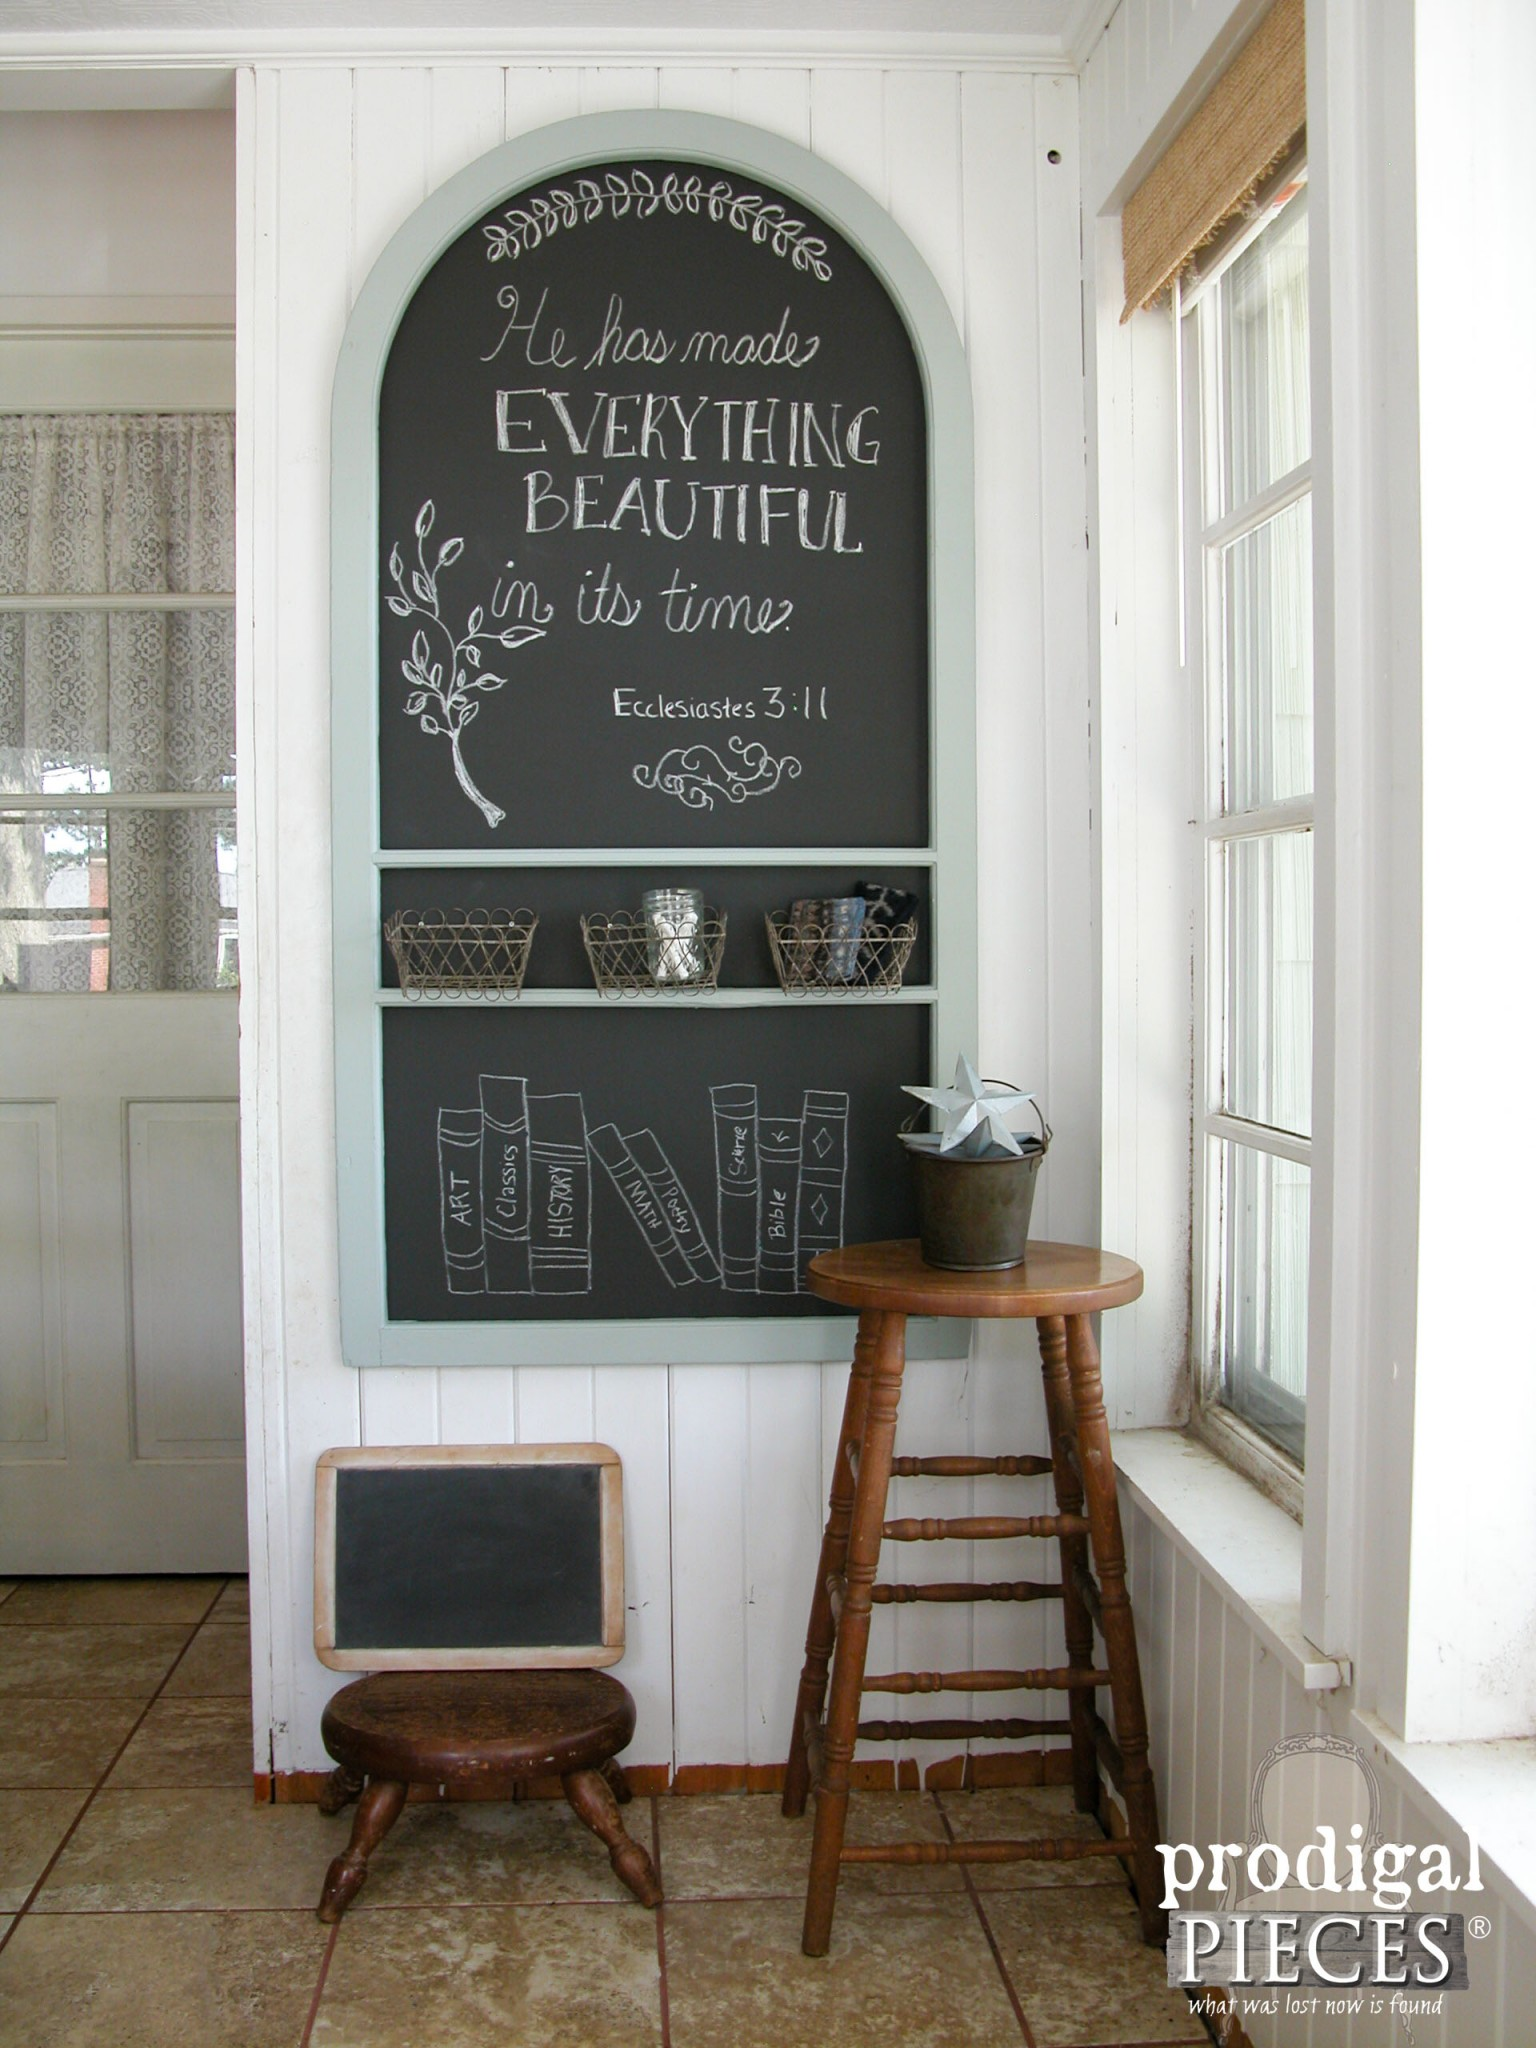 Chalkboard Made from Repurposed Screen Door by Prodigal Pieces | prodigalpieces.com & Repurposed Door Mirror ~ Trashure Goodness - Prodigal Pieces pezcame.com